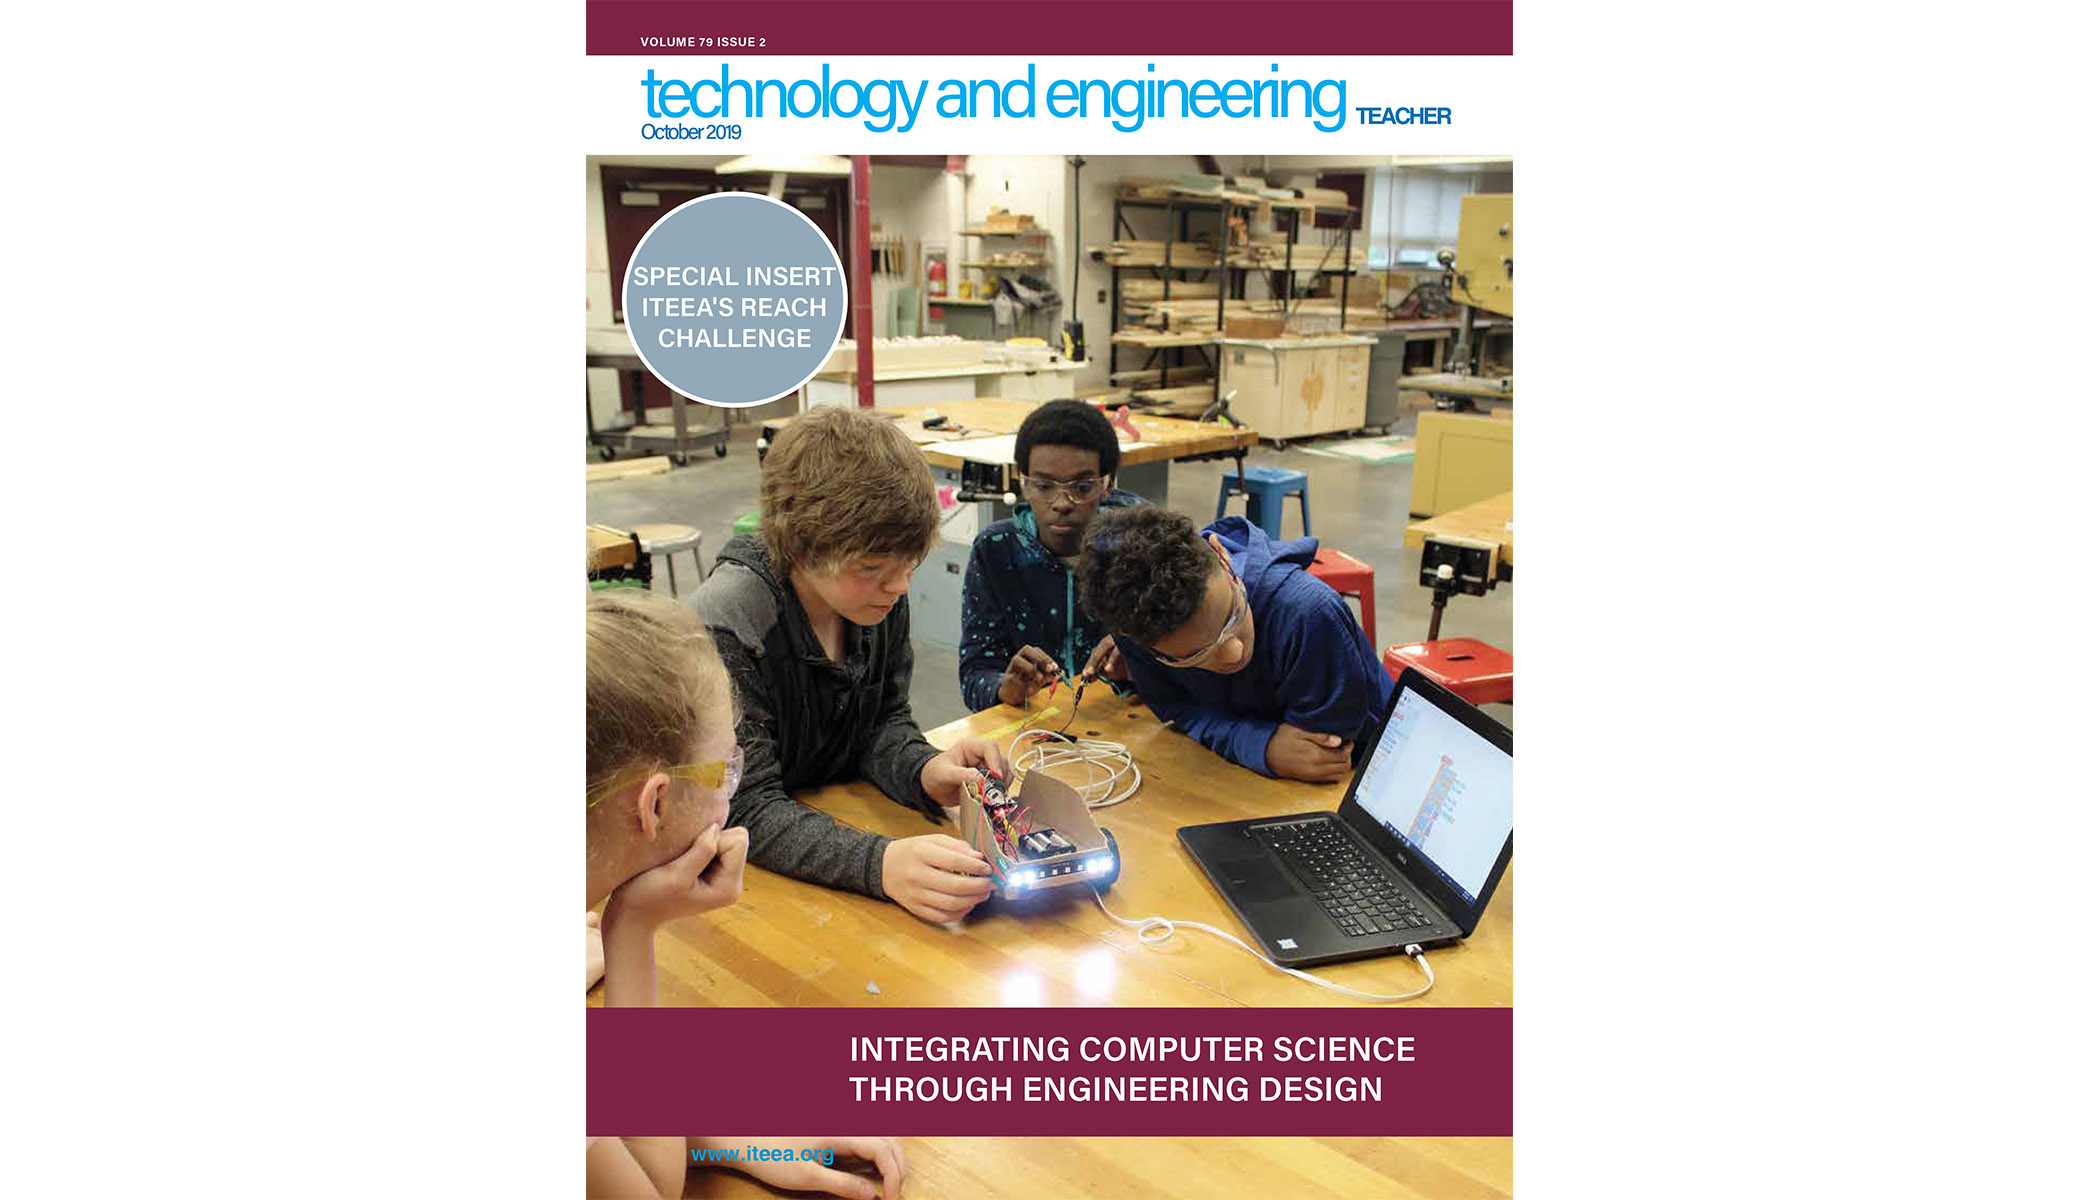 TECHNOLOGY AND ENGINEERING TEACHER - WHAT'S IN IT? OCTOBER 2019